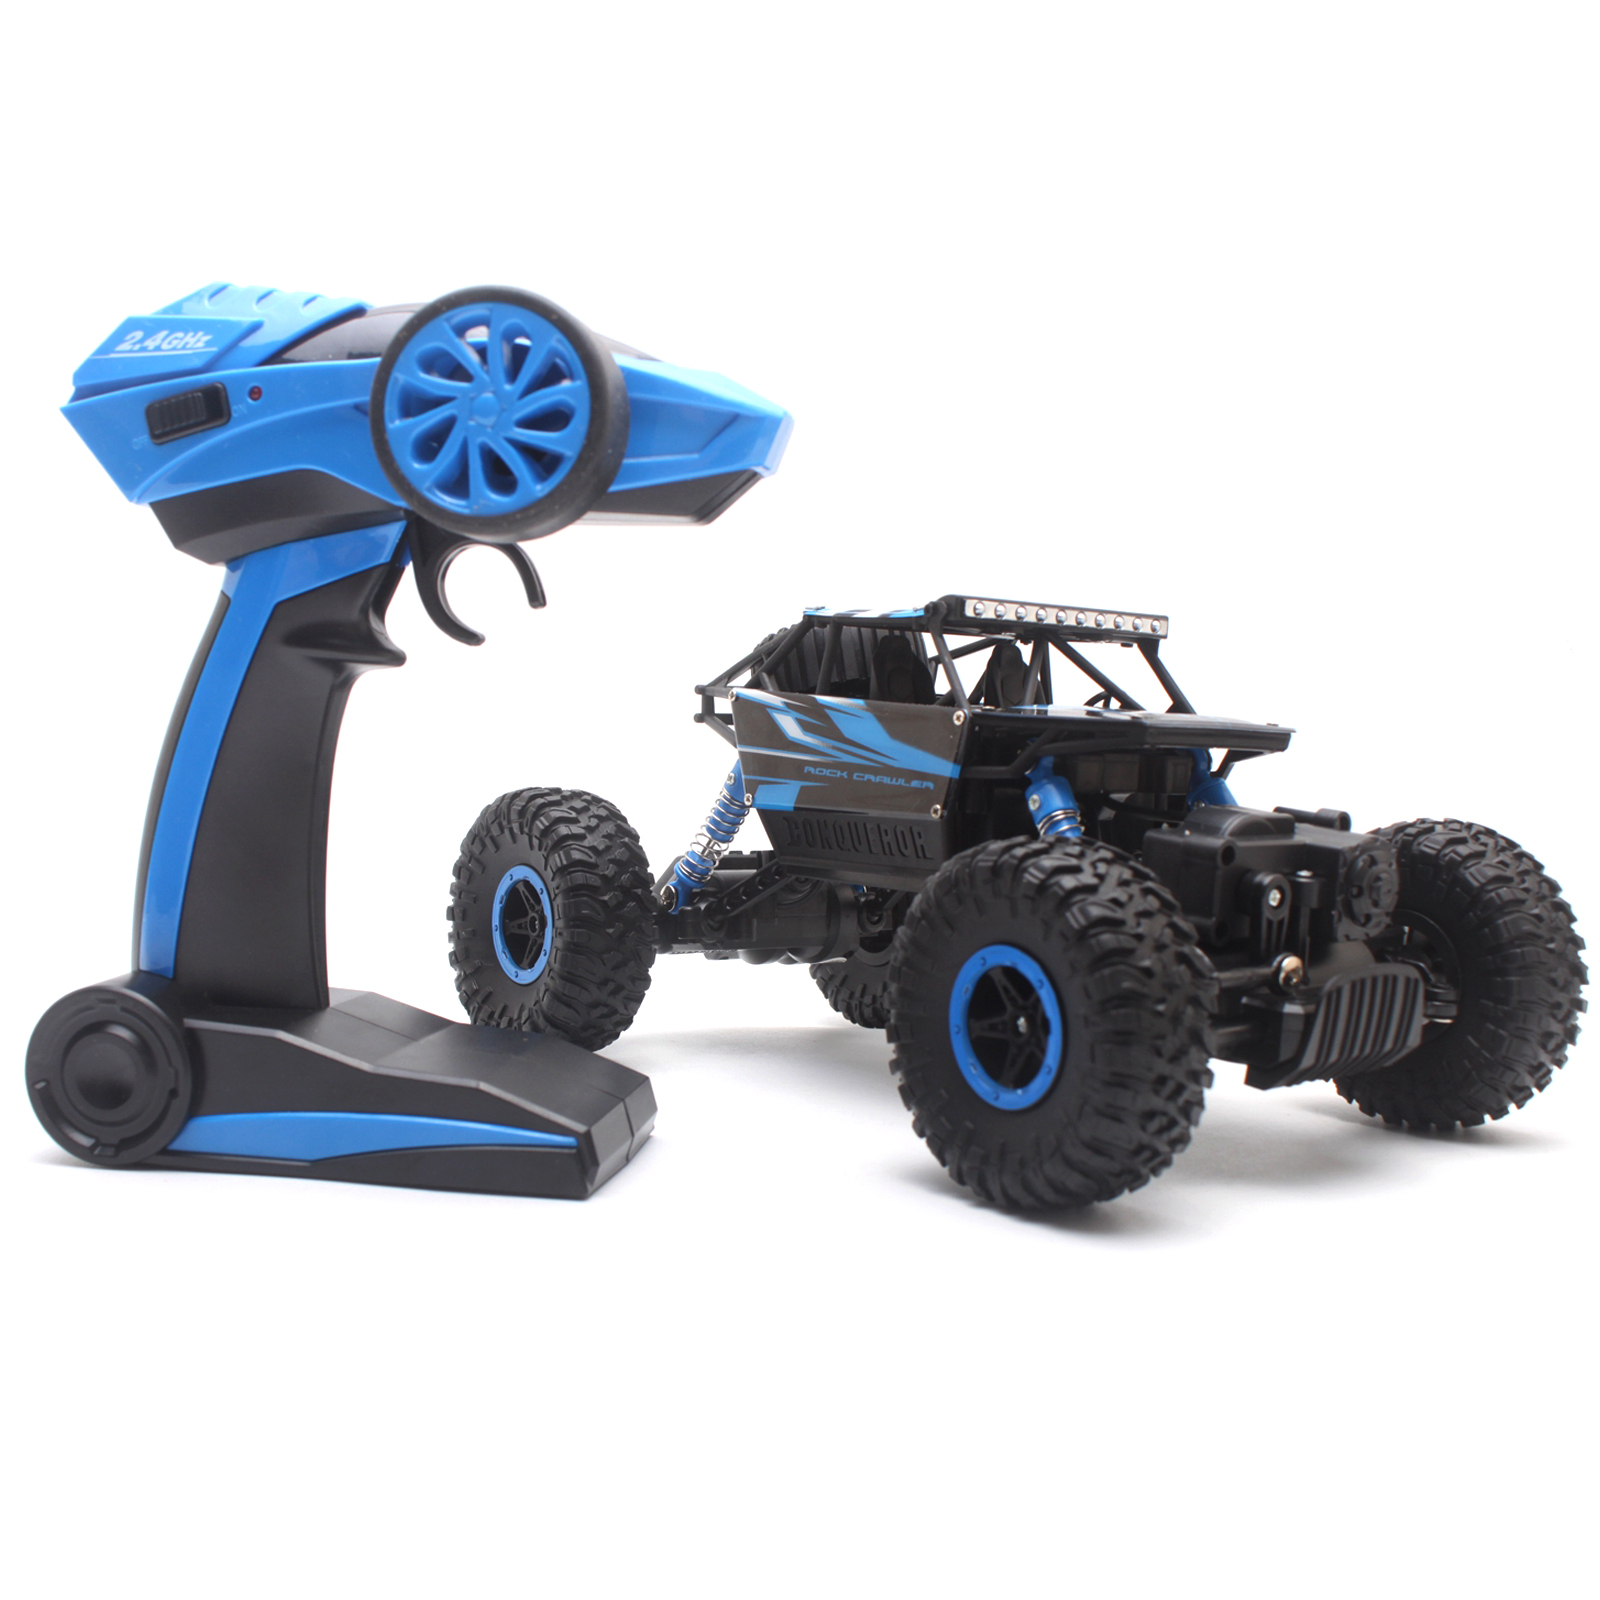 2.4GHz 4WD HB-P1801 1/18 Scale RC Car Crawler Off-road Vehicle RC Car Race Truck